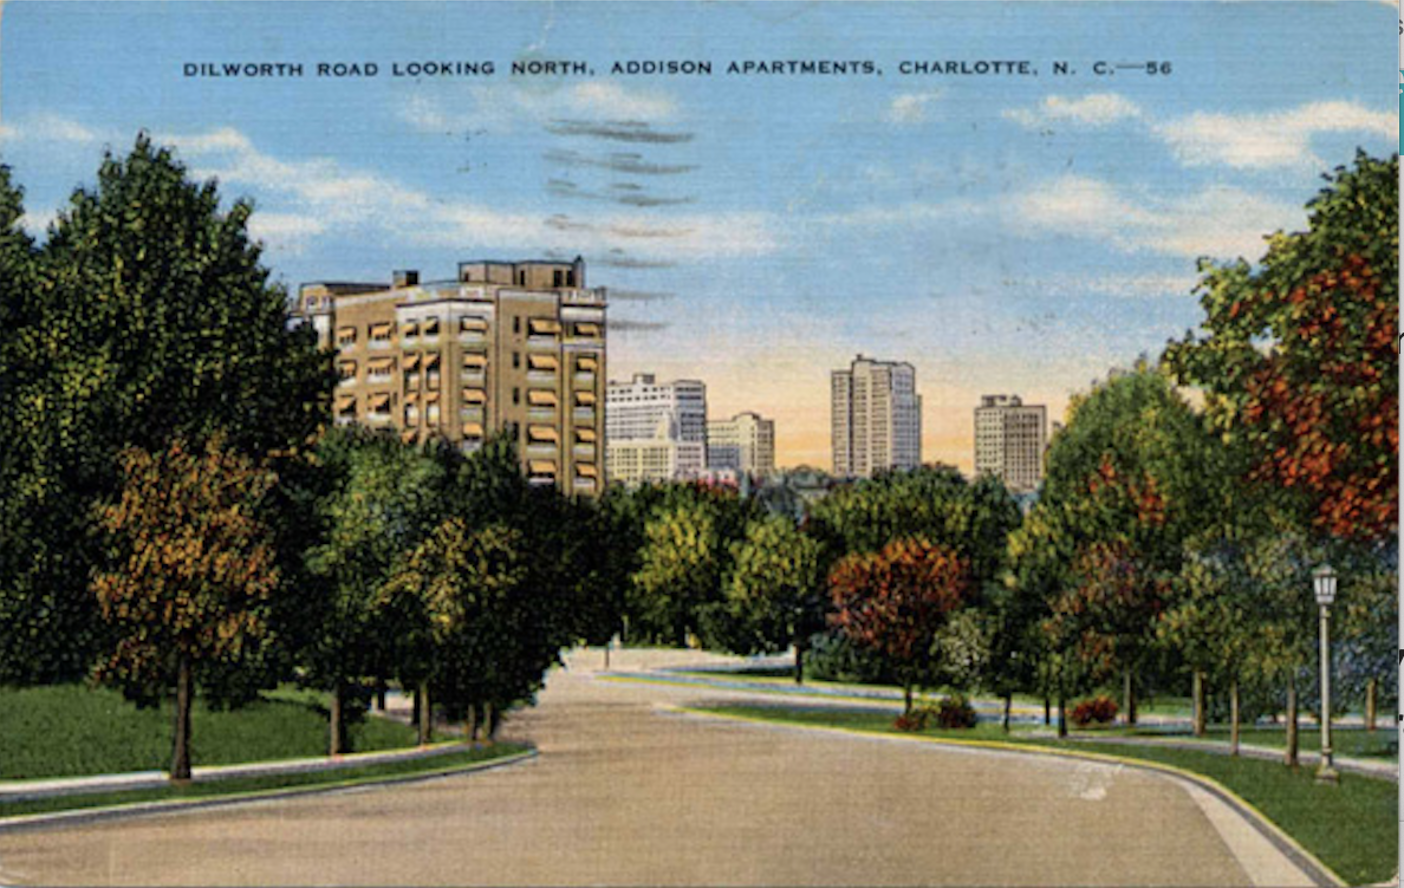 Looking down Dilworth Road to the Addison Apartments circa 1950. Postcard courtesy of Robinson-Spangler Carolina Room, Charlotte Mecklenburg Library.